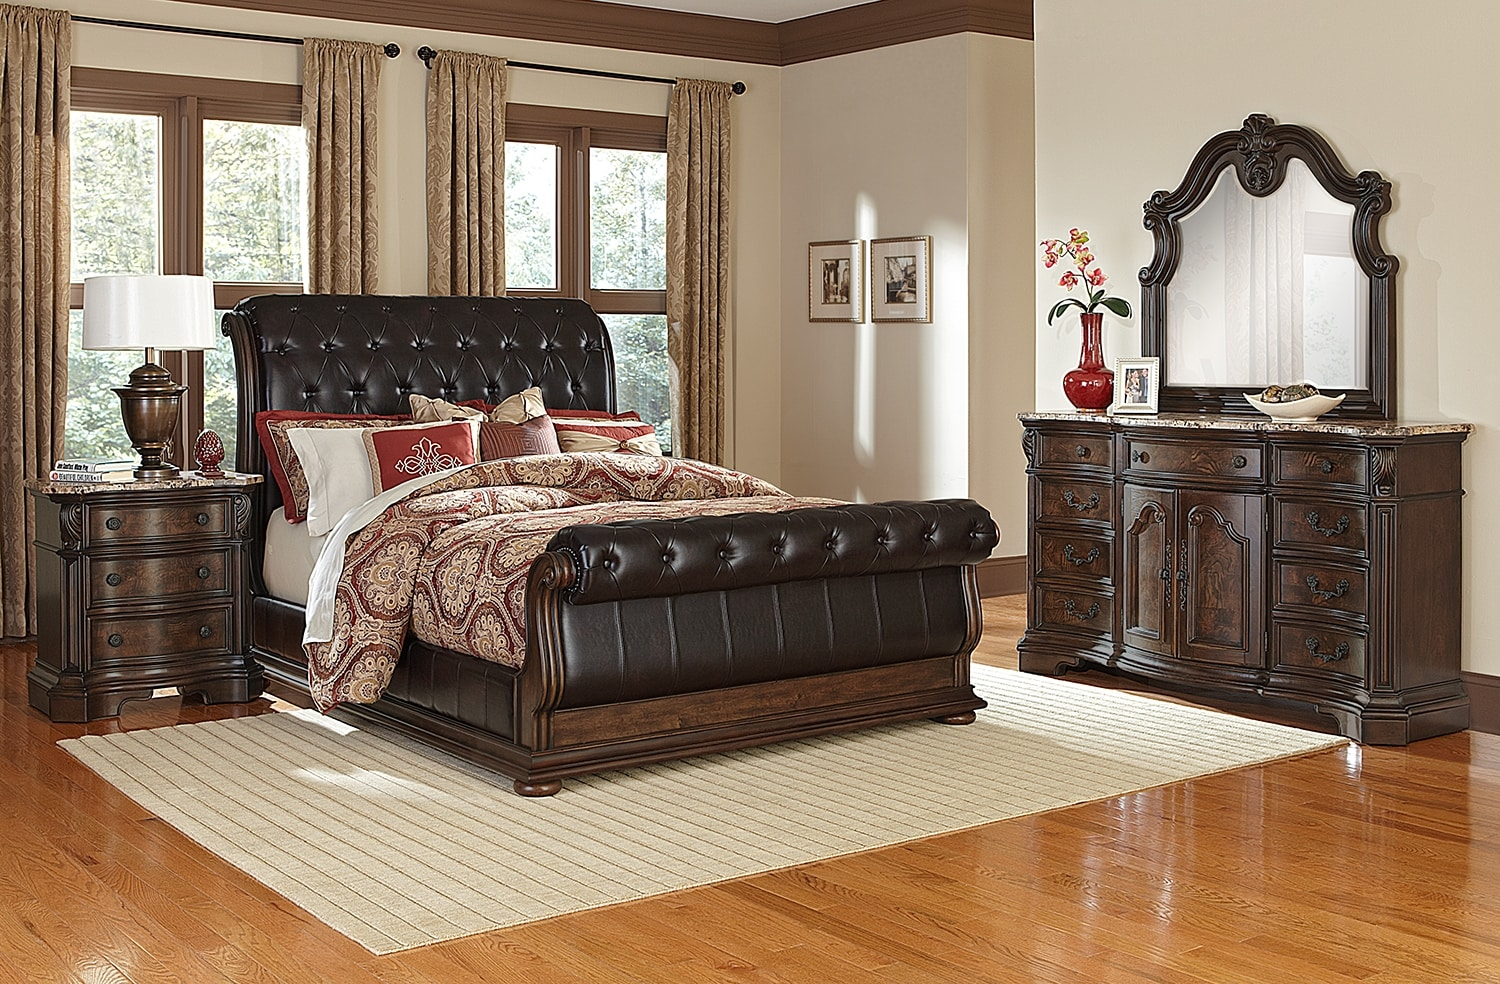 shop 6 piece bedroom sets american signature furniture 15762 | 298002 fit inside 7c320 320 composite to center center 7c320 320 background color white